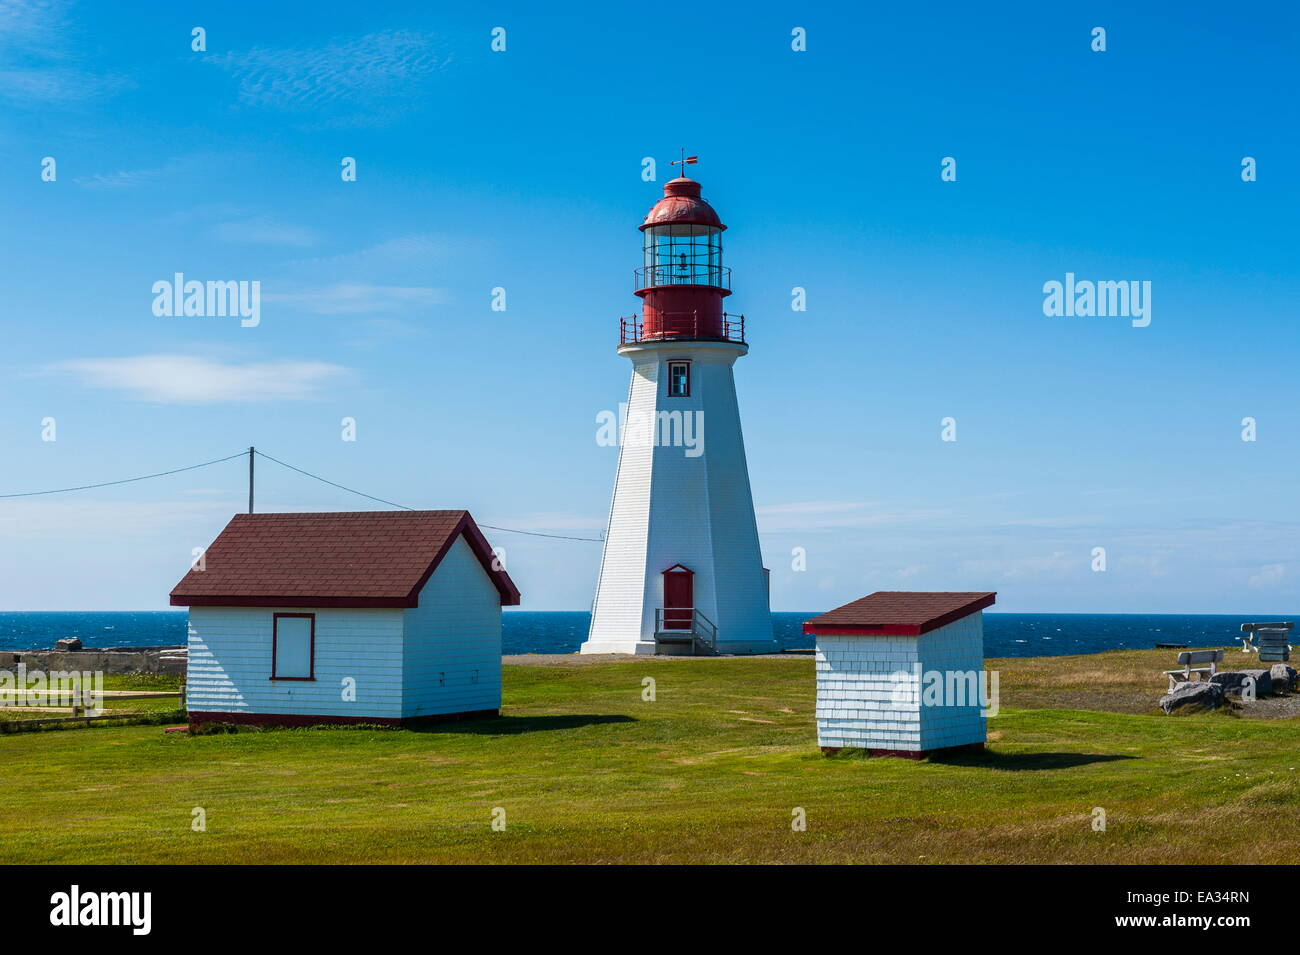 Pointe Riche lighthouse, Port au Choix, Newfoundland, Canada, North America - Stock Image